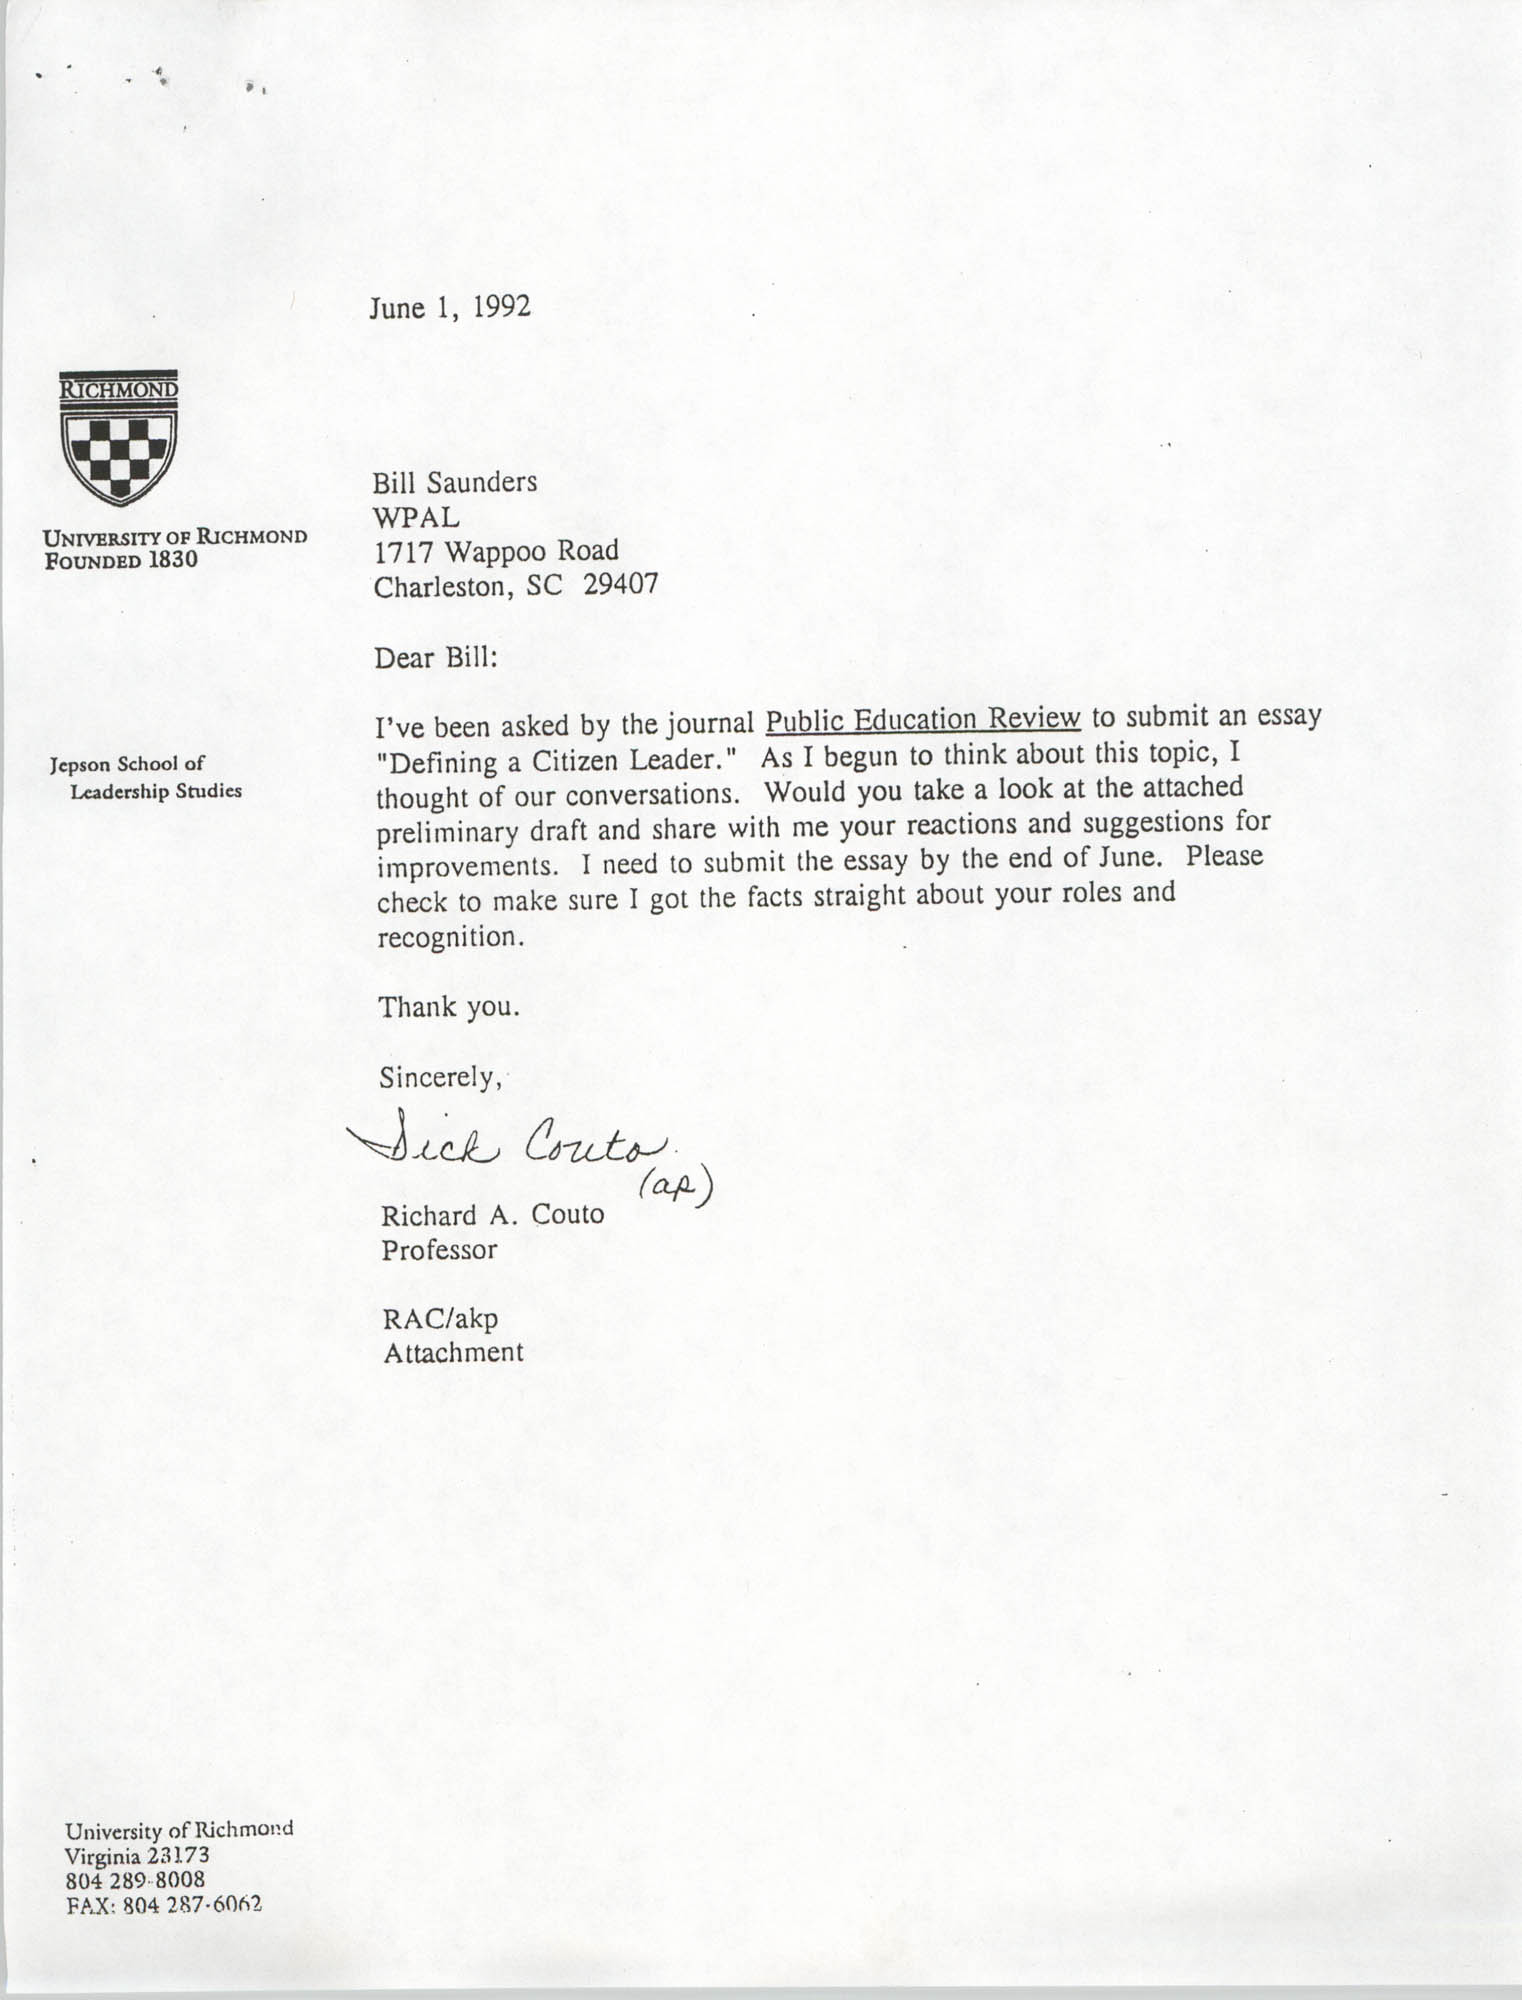 Letter from Richard A. Couto to William Saunders, June 1, 1992